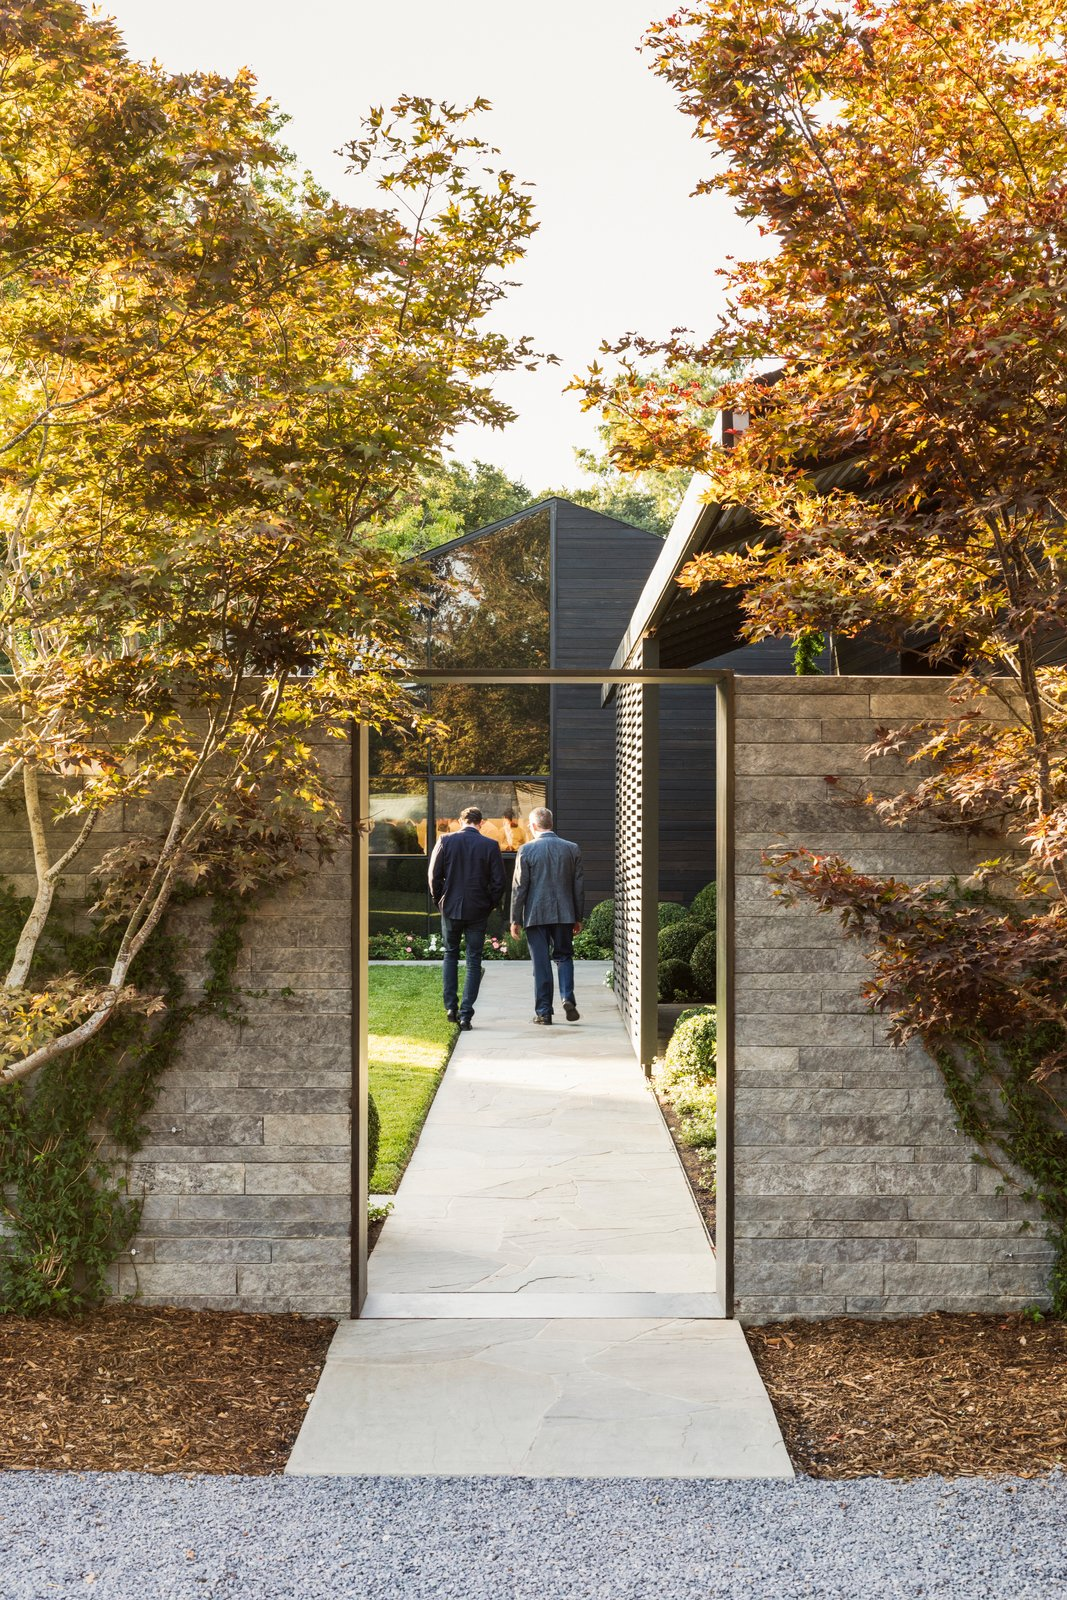 Arriving at The French Laundry, guests now begin their experience through a sequence of new garden spaces. Tagged: Exterior, Wood Siding Material, Stone Siding Material, and Glass Siding Material.  Best Photos from A Look Inside The French Laundry's Stunning $10M Renovation